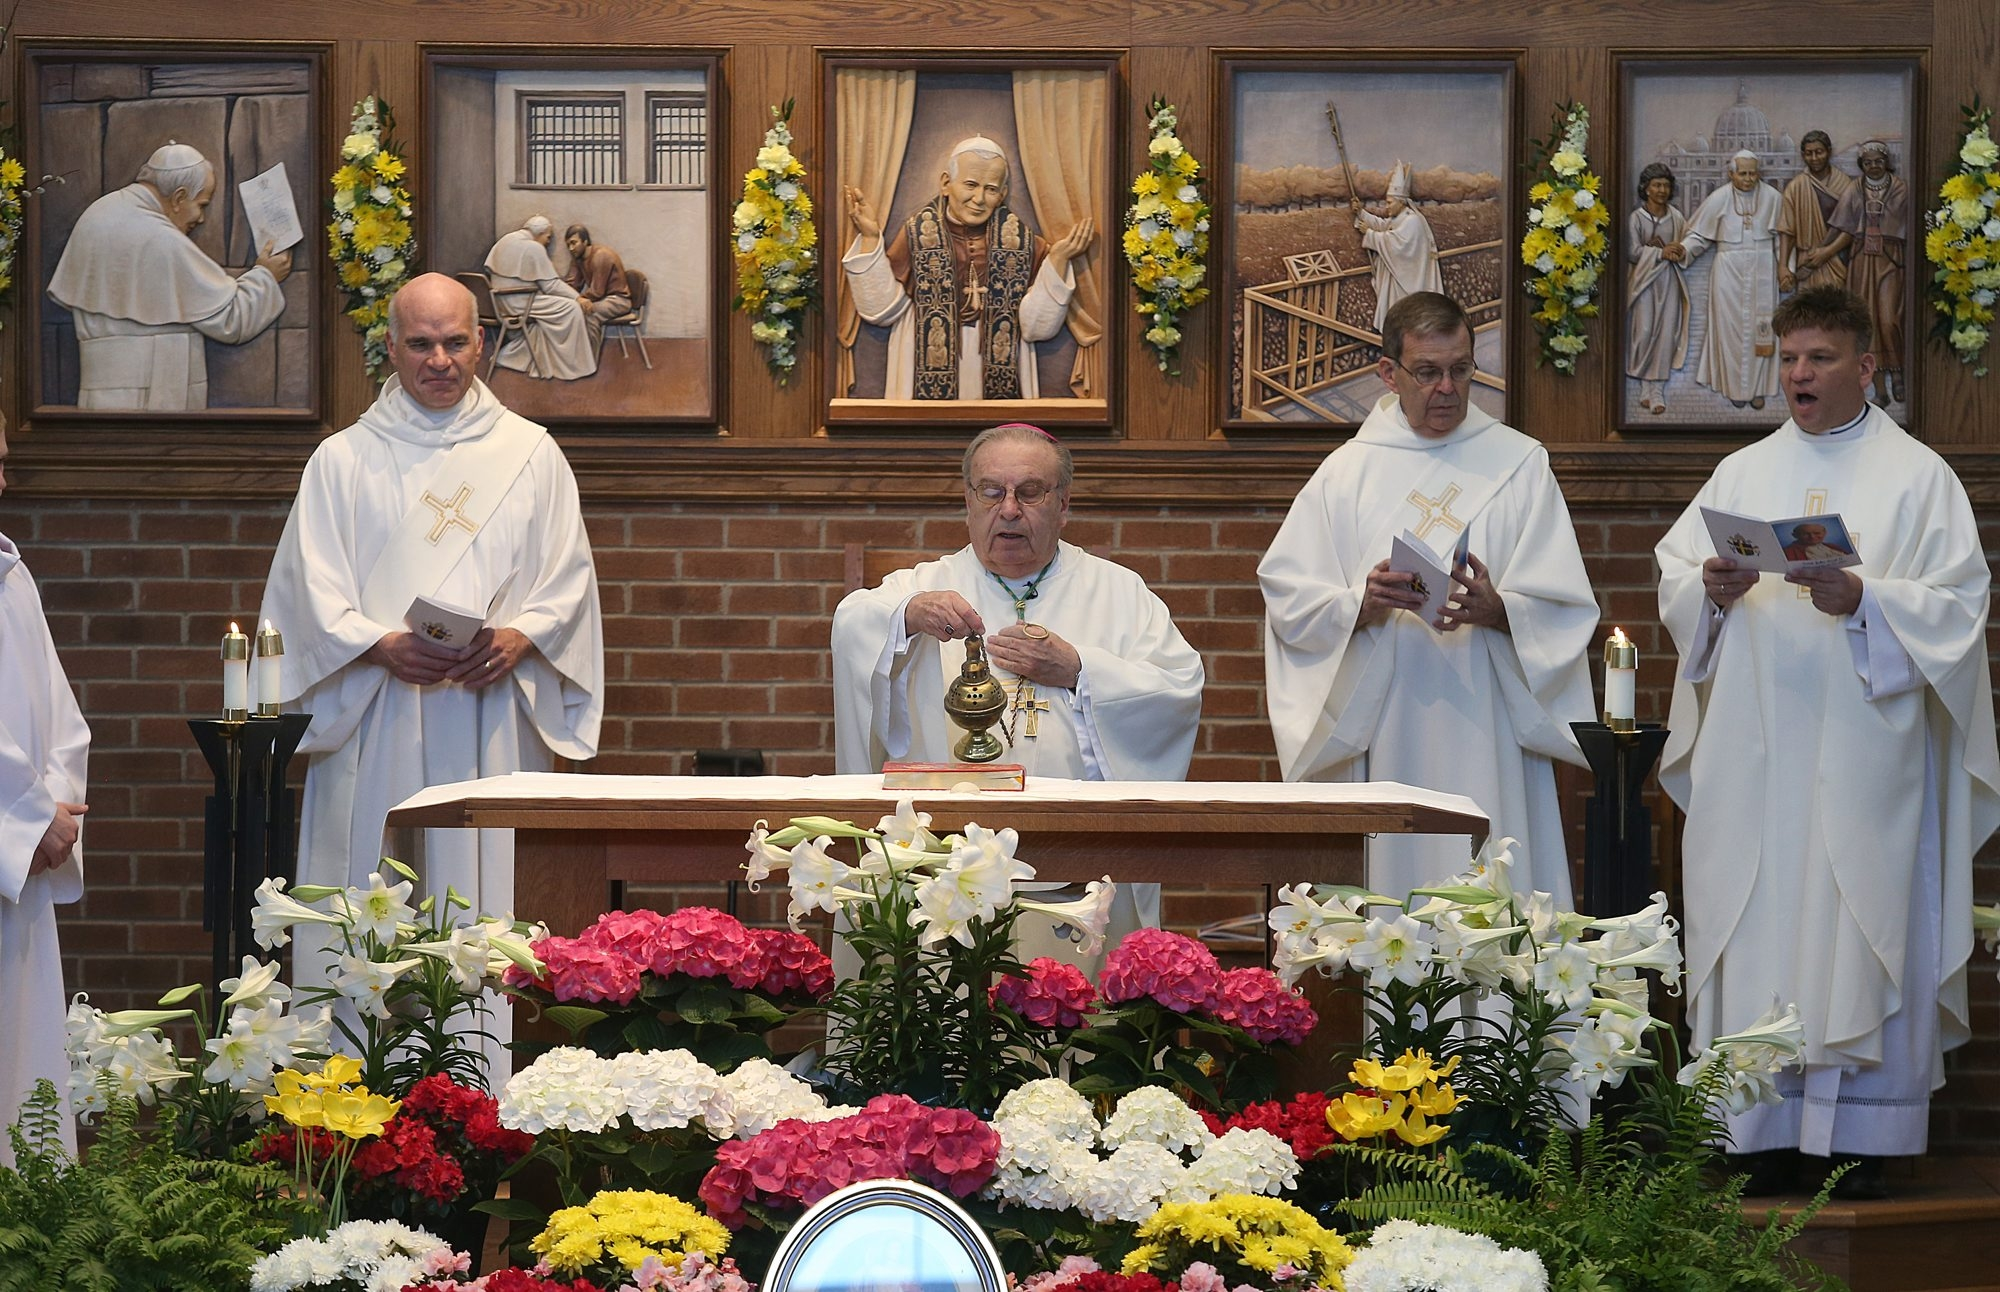 Bishop Edward Kmiec, center, presides over a special Mass dedicated to the late Pope John Paul II at St. John Paul II Church in Lake View on April 27.  Bishop Edward Kmiec, center, presides over a special Mass dedicated to the late Pope John Paul II at St. John Paul II Church in Lake View.